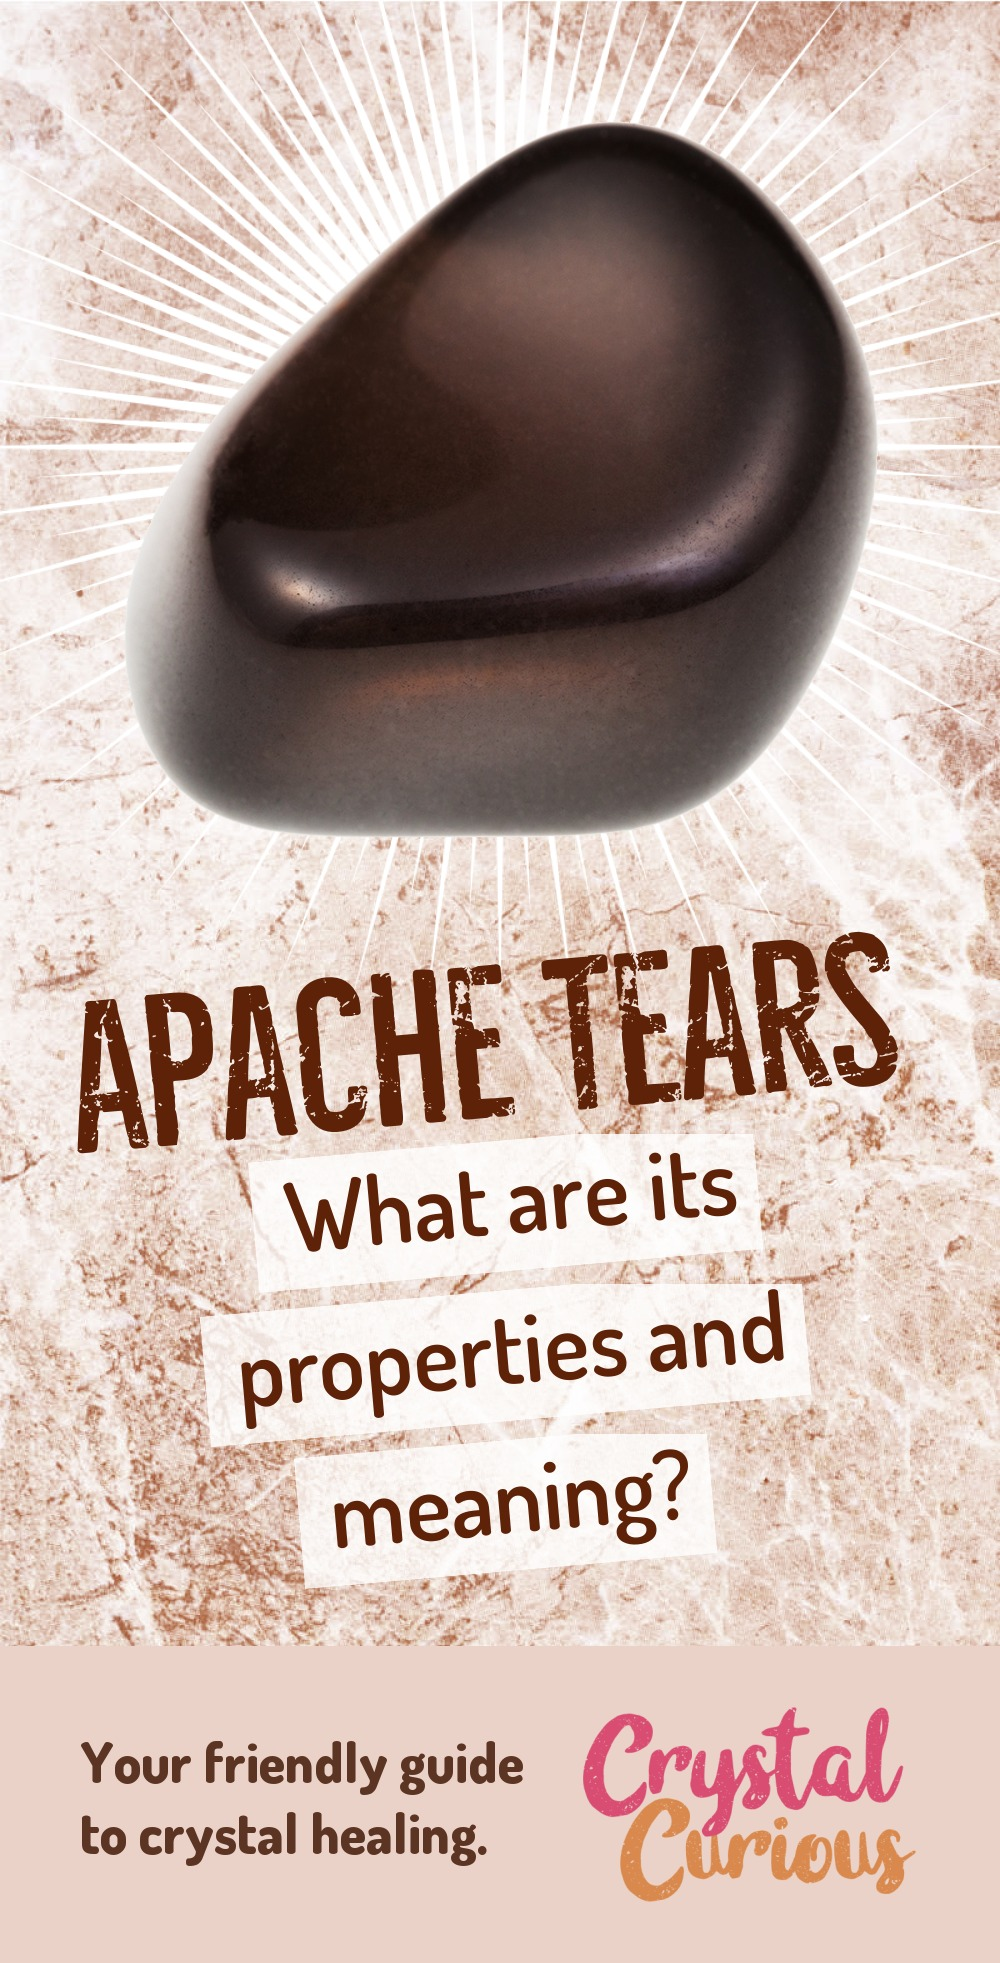 Apache Tears Meaning & Healing Properties. Apache Tears are comforting & grounding as you heal from grief and trauma. Learn  all the crystal & gemstone properties and crystal healing for beginners at CrystalCurious.com. Chakra healing with stones, positive energy & vibrations, crystal meanings, crystal therapy. #crystalhealing #crystals #gemstones #energymedicine #energyhealing #newage #crystalcurious